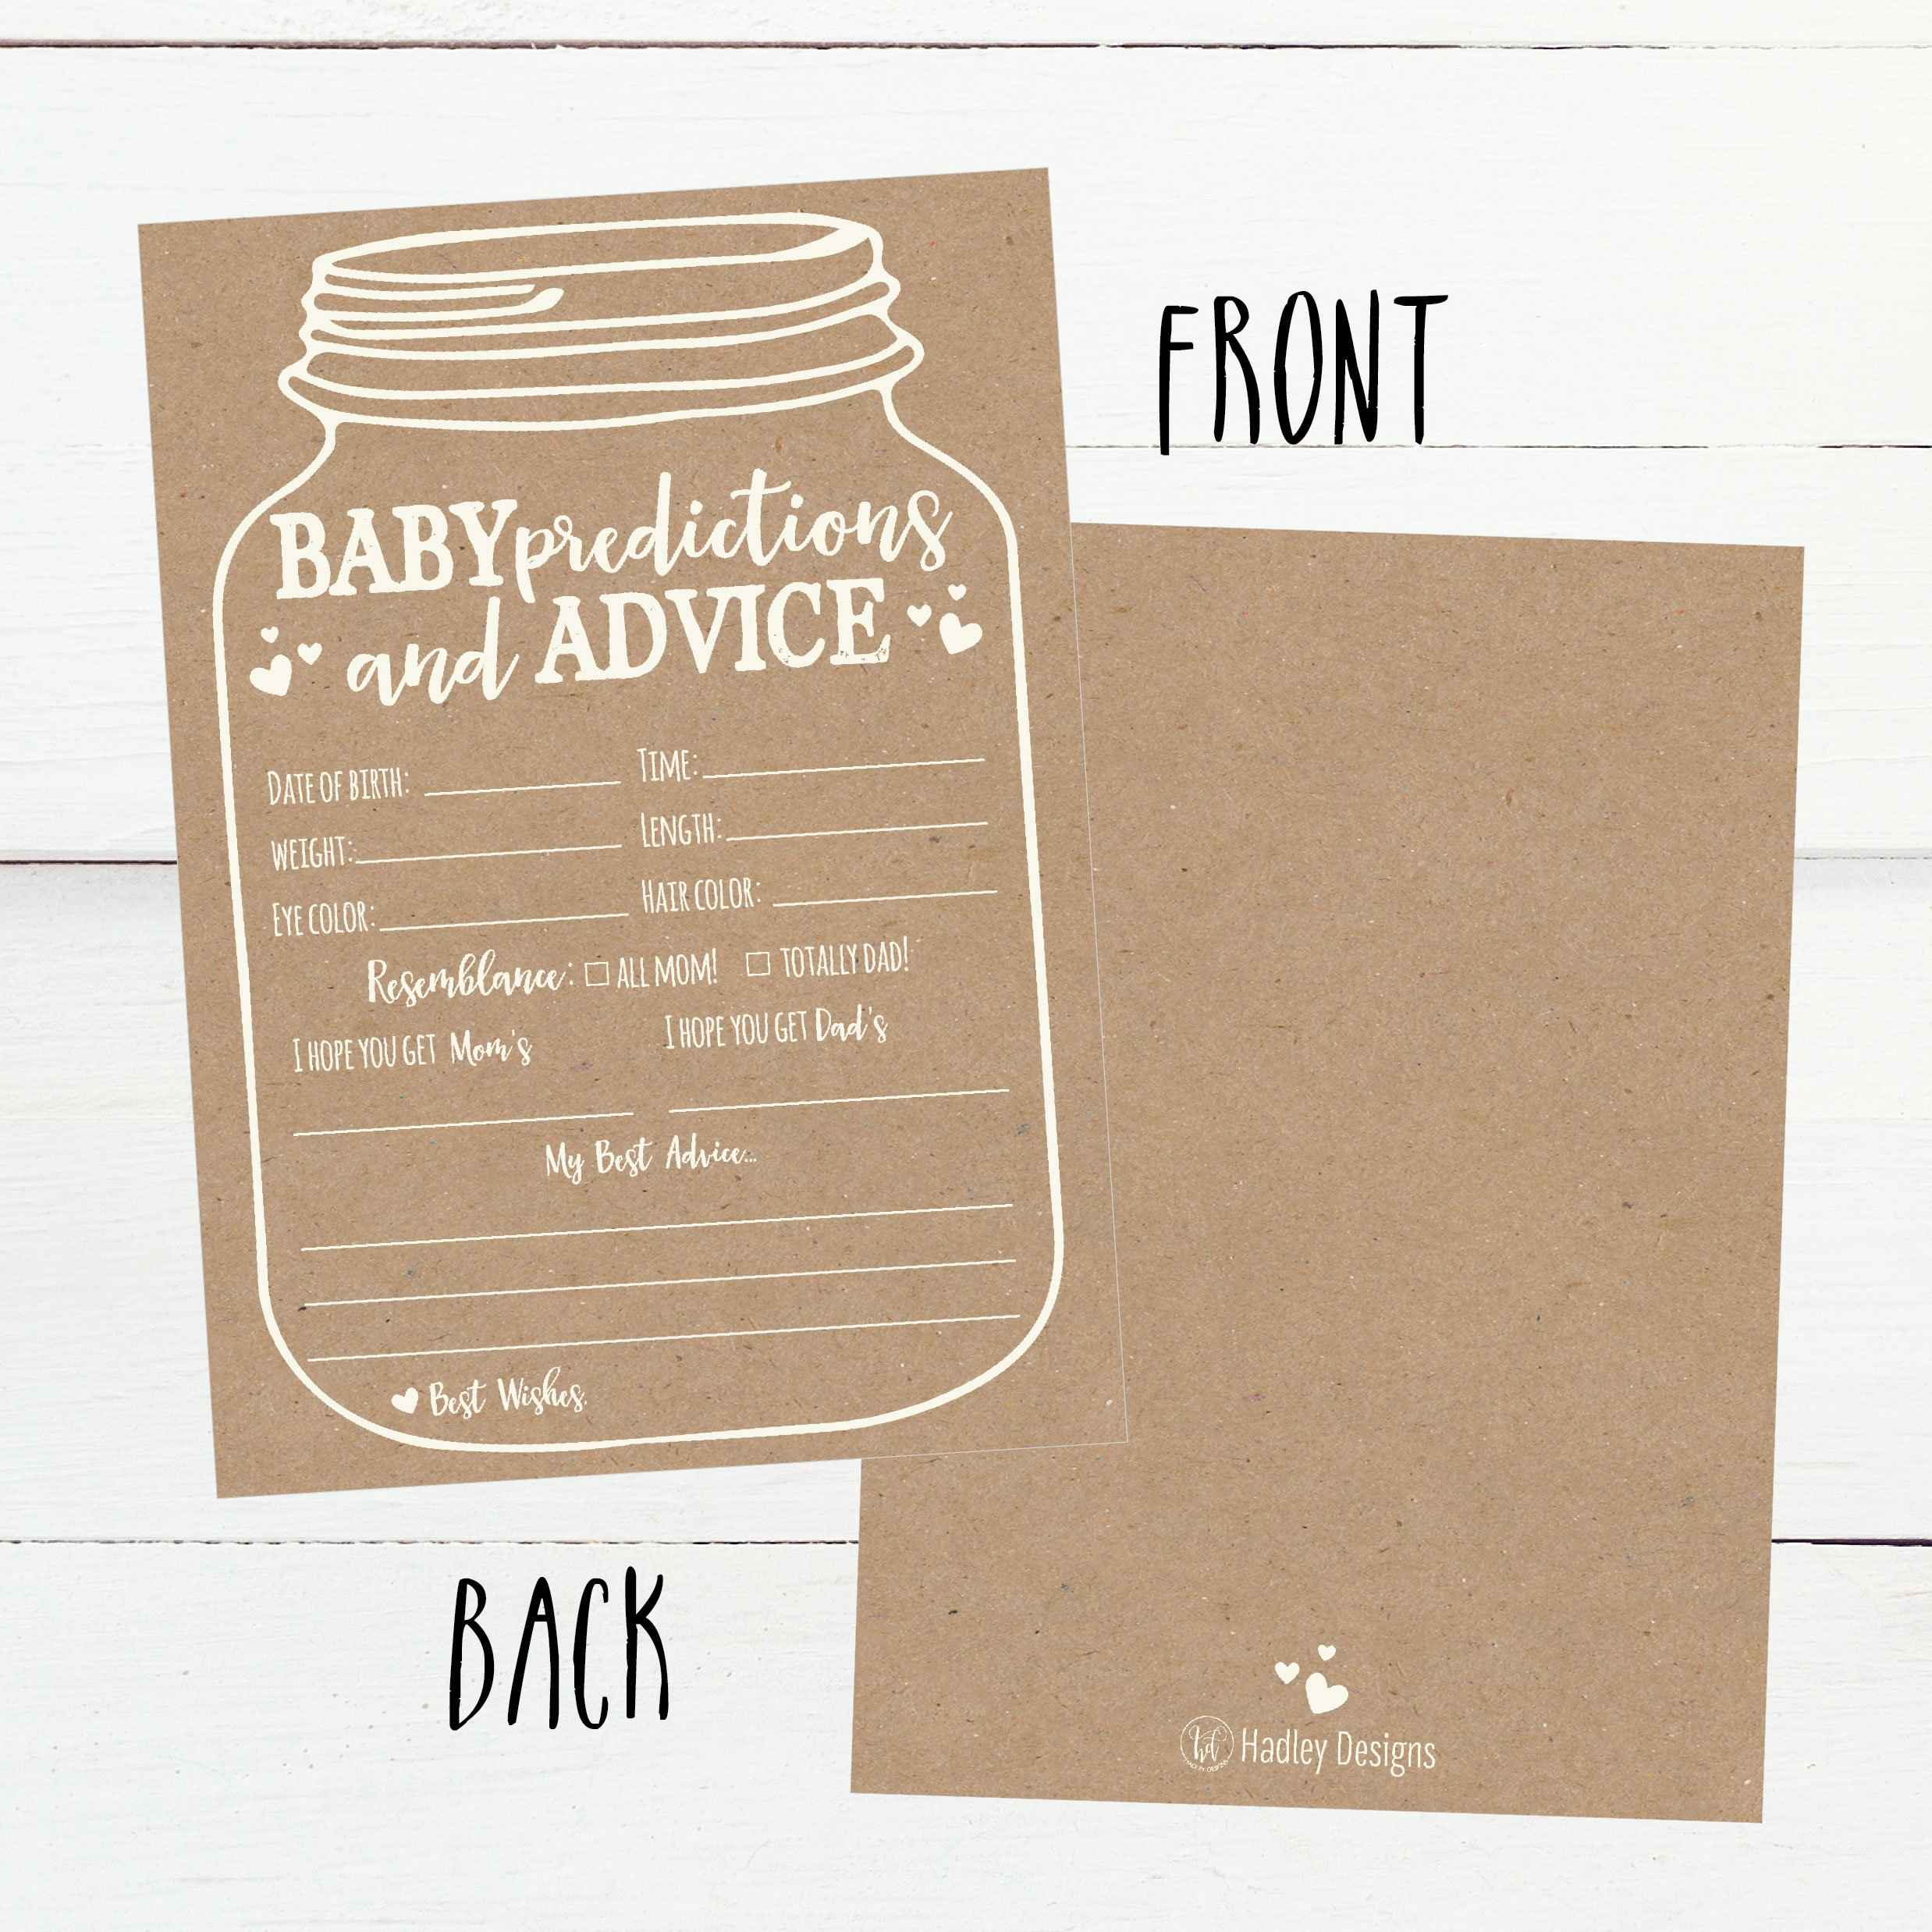 50 Mason Jar Advice and Prediction Cards for Baby Shower Game, New Mom & Dad Card or Mommy & Daddy To Be, For Girl or Boy Babies, New Parent Message Advice Book, Fun Gender Neutral Shower Party Favors by Hadley Designs (Image #2)